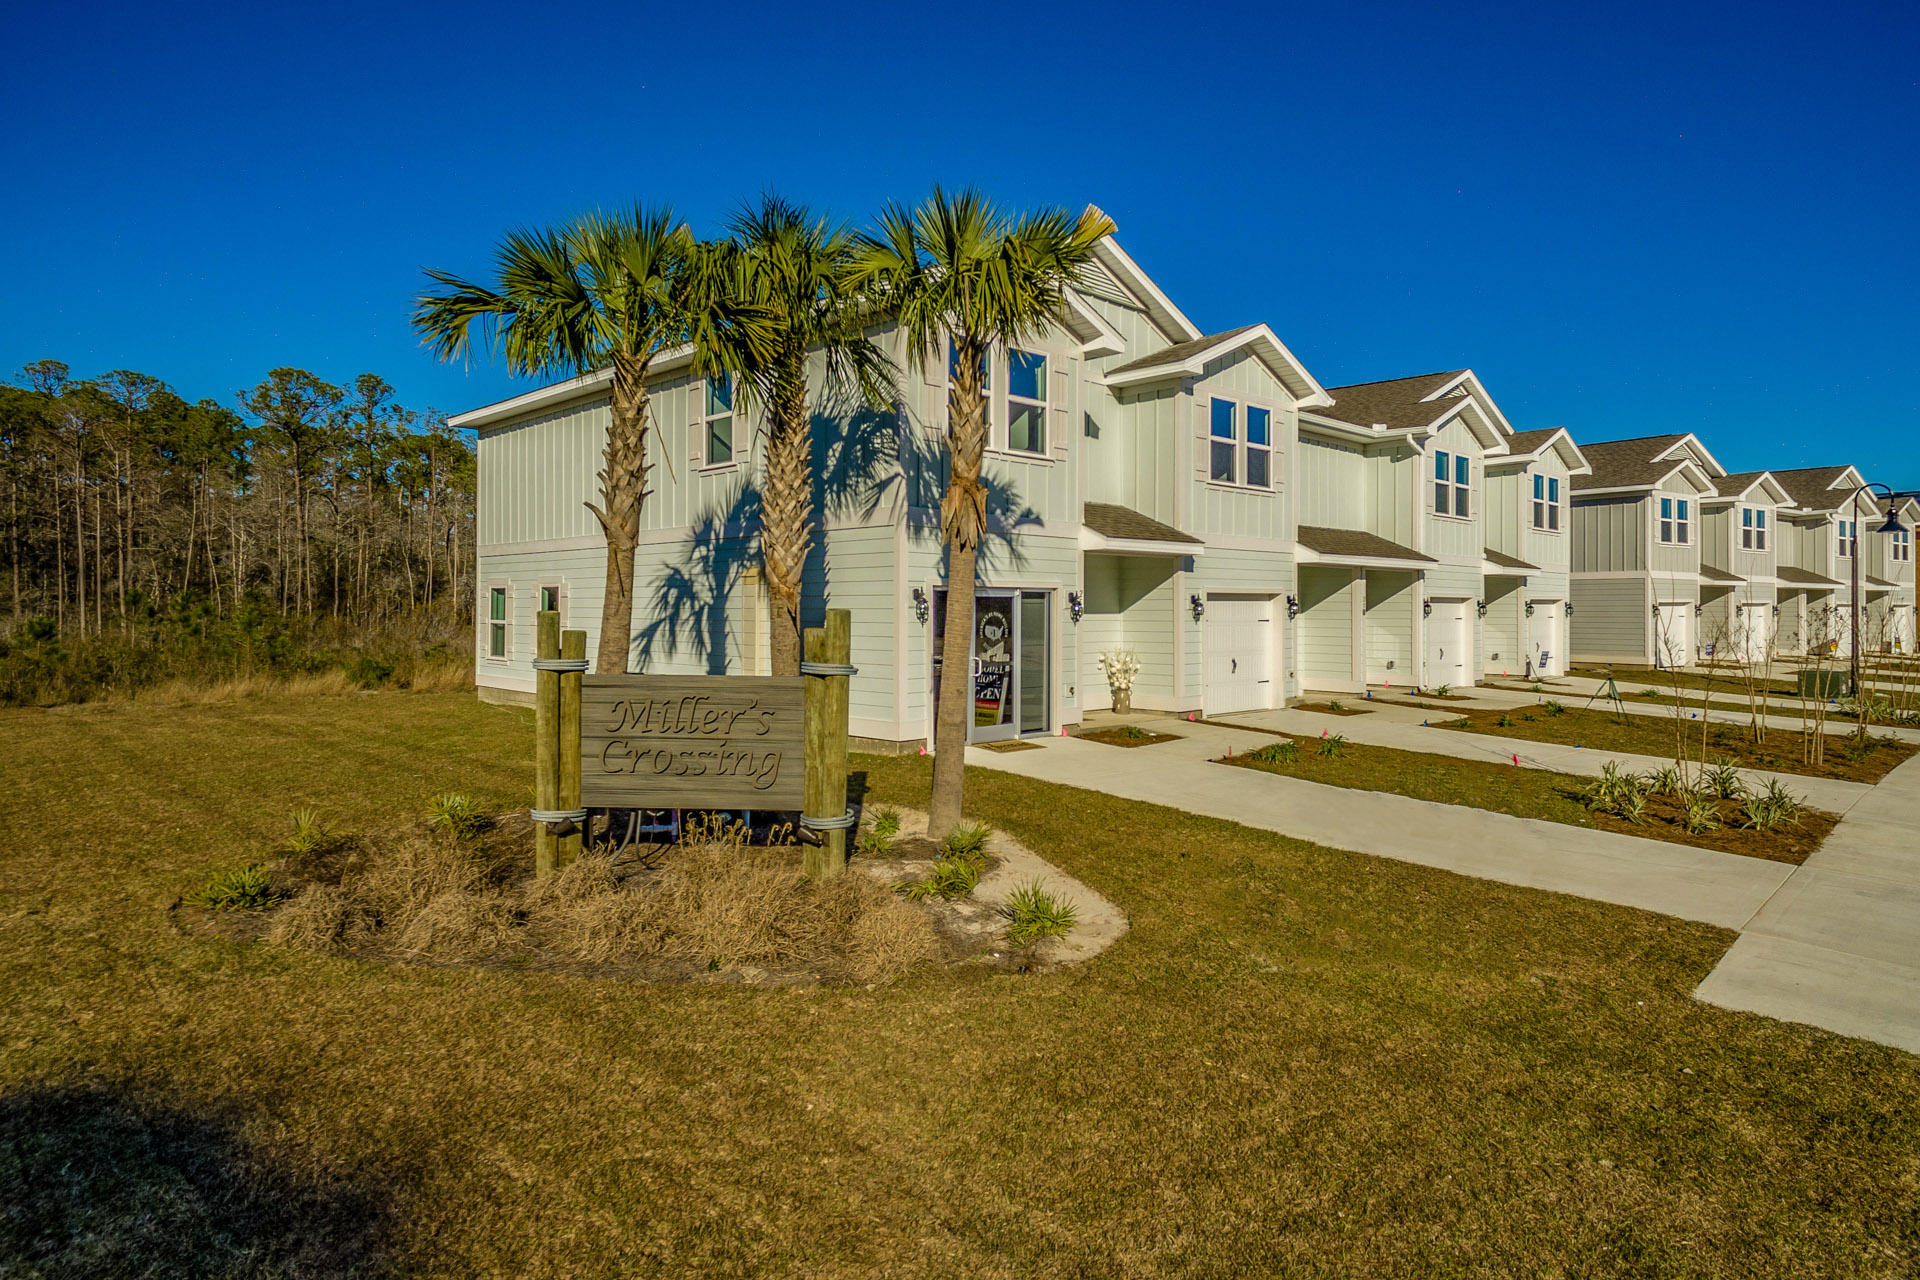 Construction Complete! Ready to move in. AMAZING OPPORTUNITY to own new construction in South Walton. Located just minutes away from famous CO Hwy 30a,some of the country's best beaches, incredible shopping, and world class dining. Miller's Crossing is in a central location to both Destin, and Panama City Beach,allowing you to enjoy the best of both worlds. Walking distance to Alaqua Unleashed Dog park, Padgett Park, nature trails and public library. Located just North of Hwy 98 in North Santa Rosa Beach.